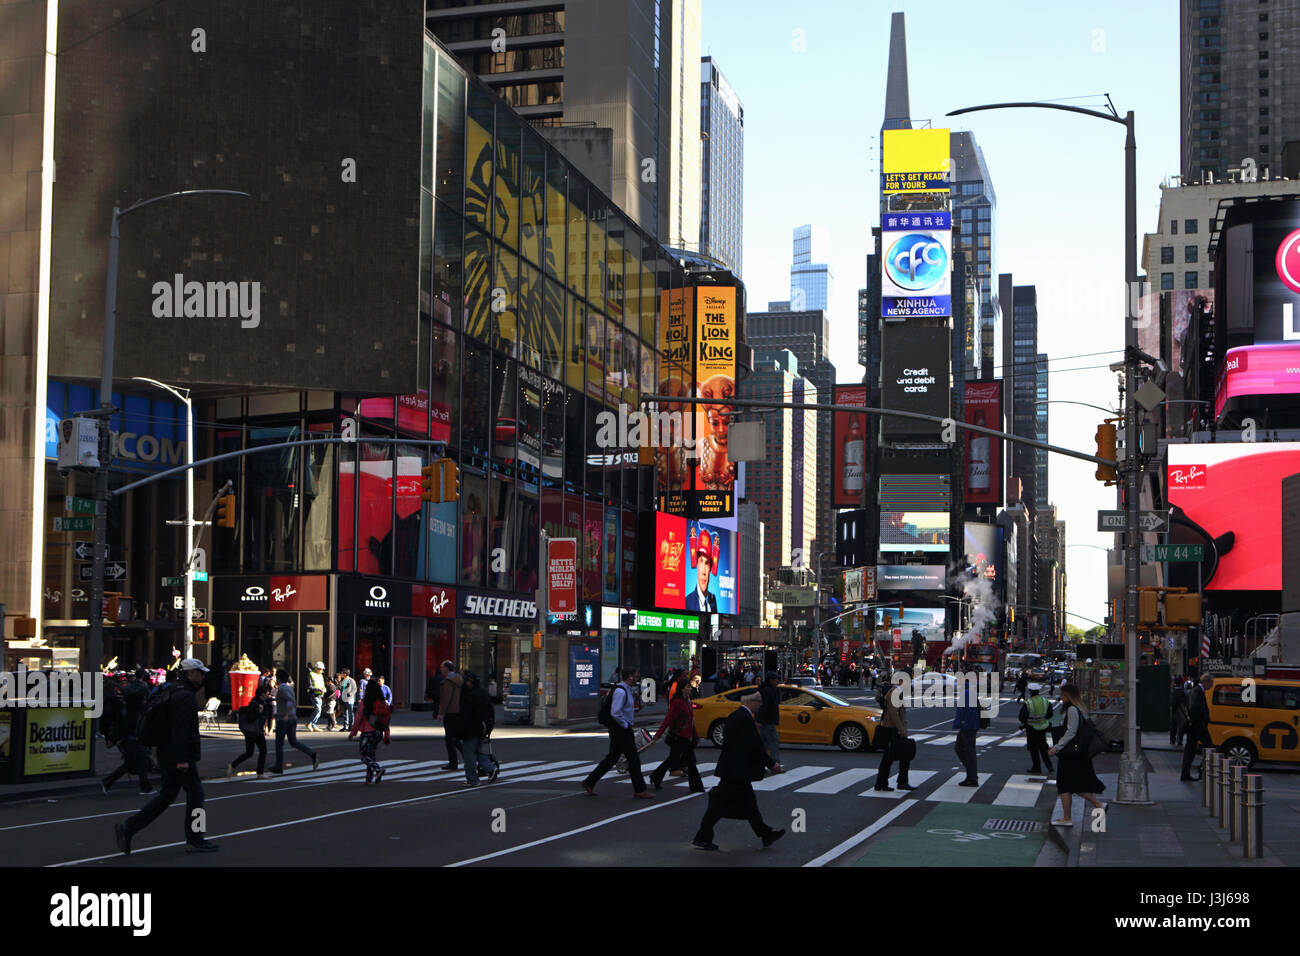 Morning in Times Square New York City along Seventh Avenue at West 44th Street looking north uptown - Stock Image